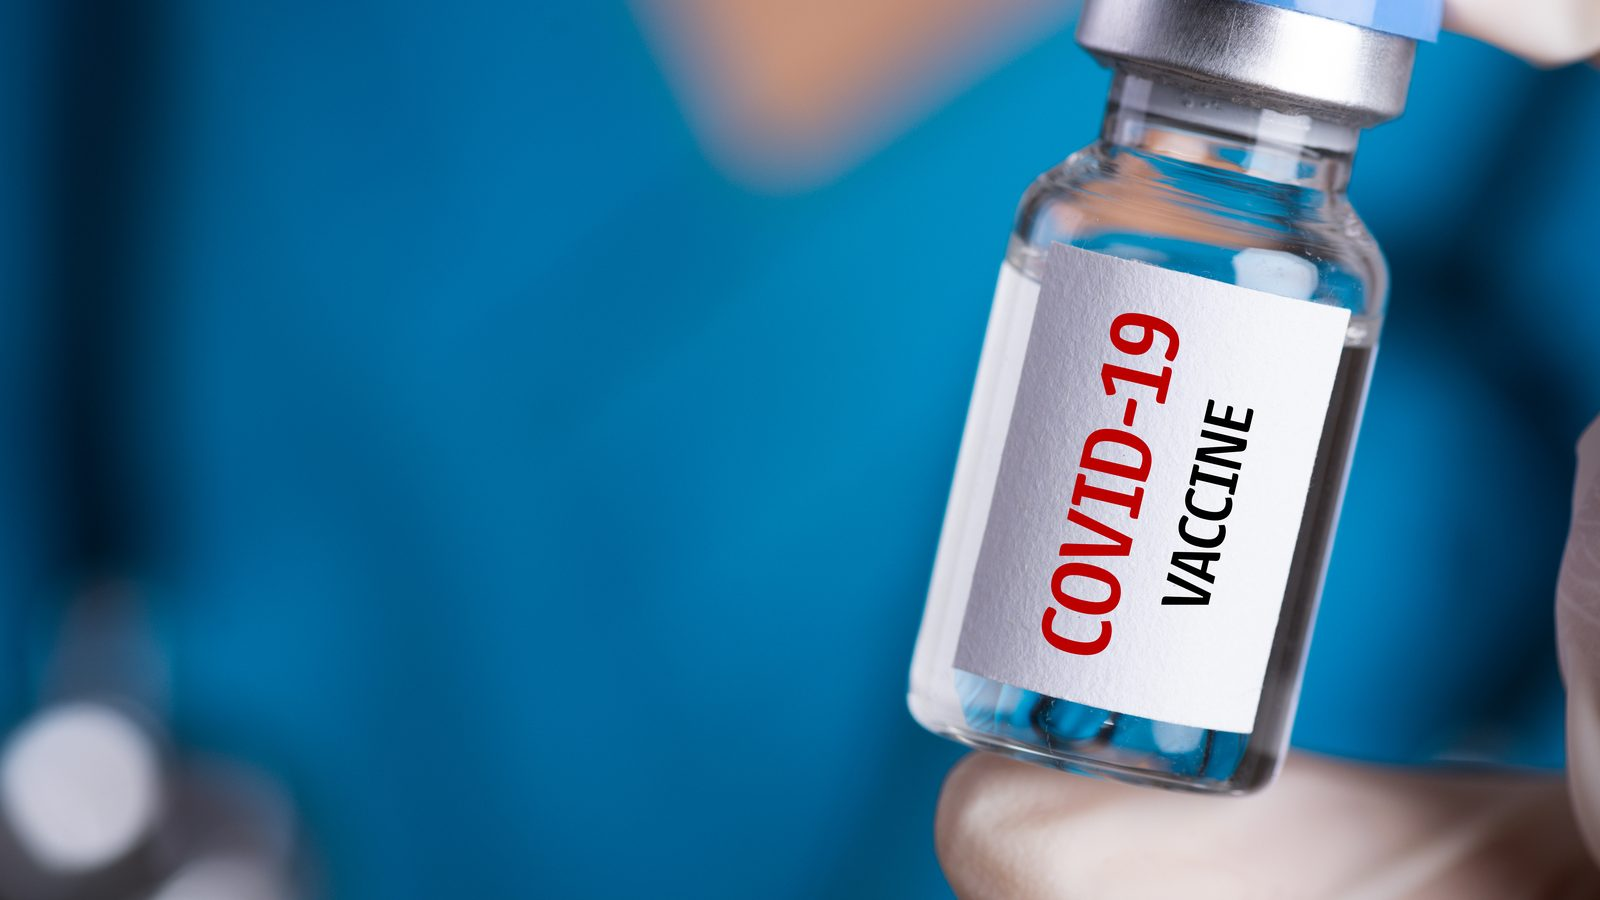 COVID19 Vaccine: this was quick! How?